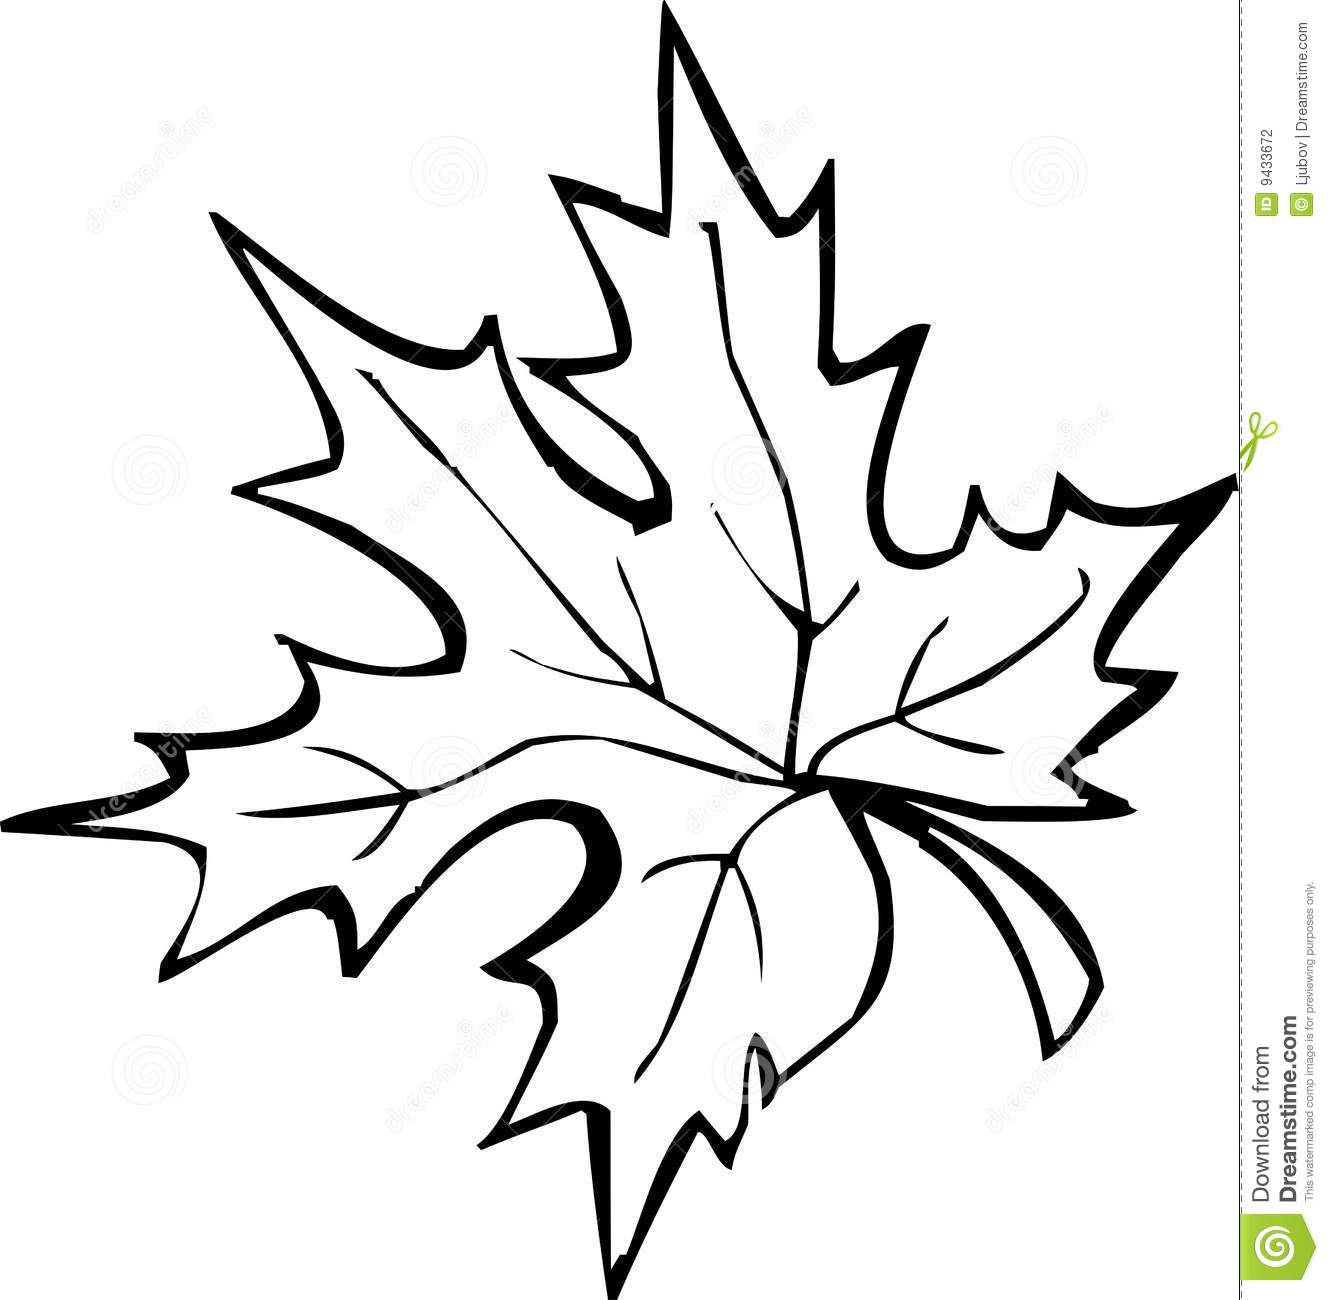 1329x1300 Maple Leaf Clipart Black And White Clipart Panda Free Clipart